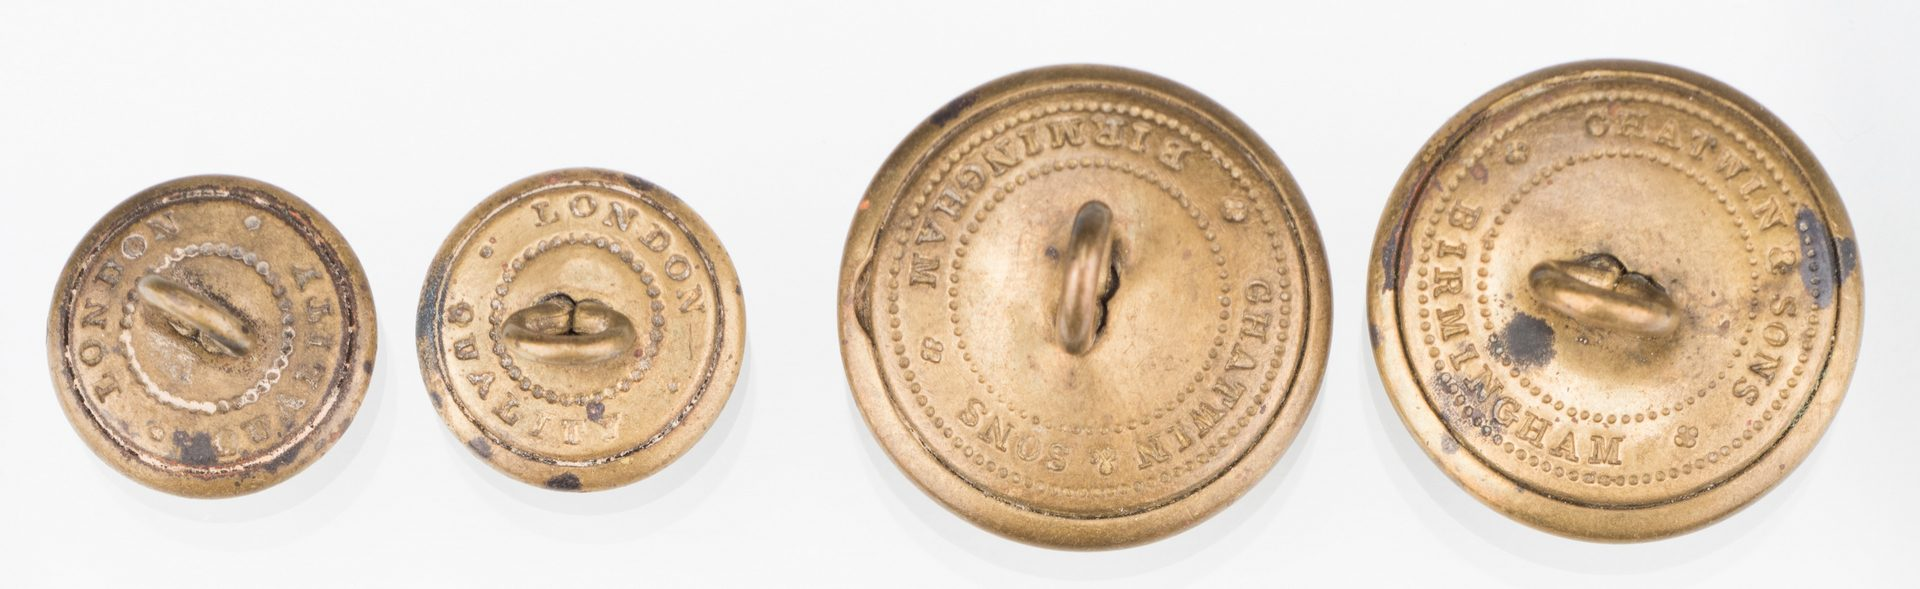 Lot 206: 4 Rare Confederate Uniform Buttons, Chatwin & Sons, Group #3